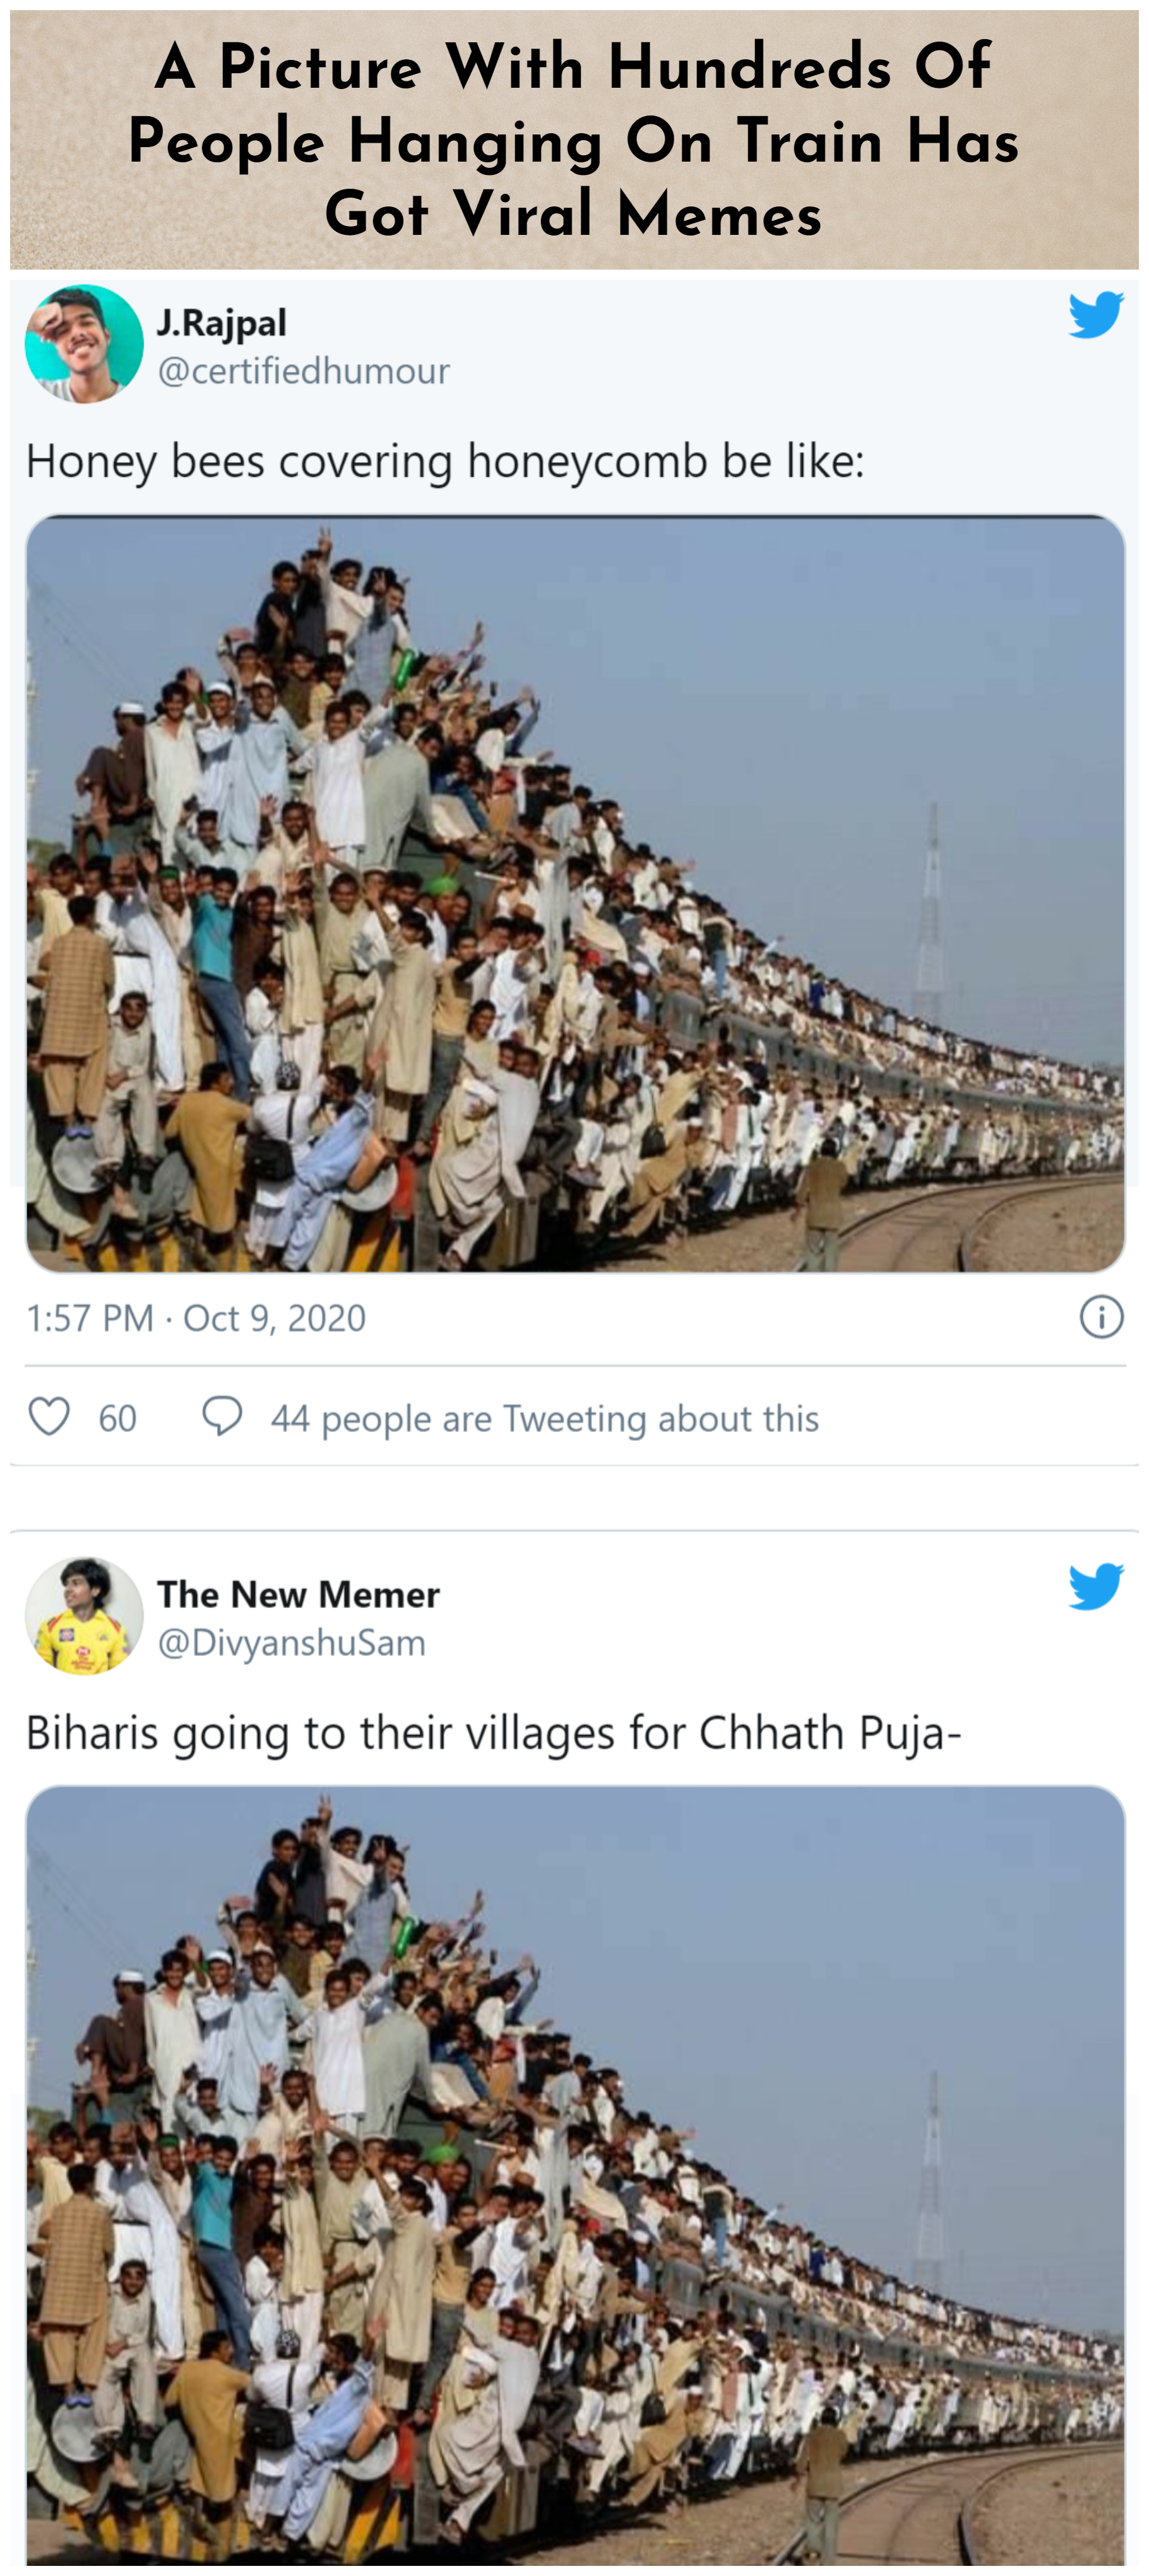 A Picture With Hundreds Of People Hanging On Train Has Got Viral Memes Memes Pictures Viral